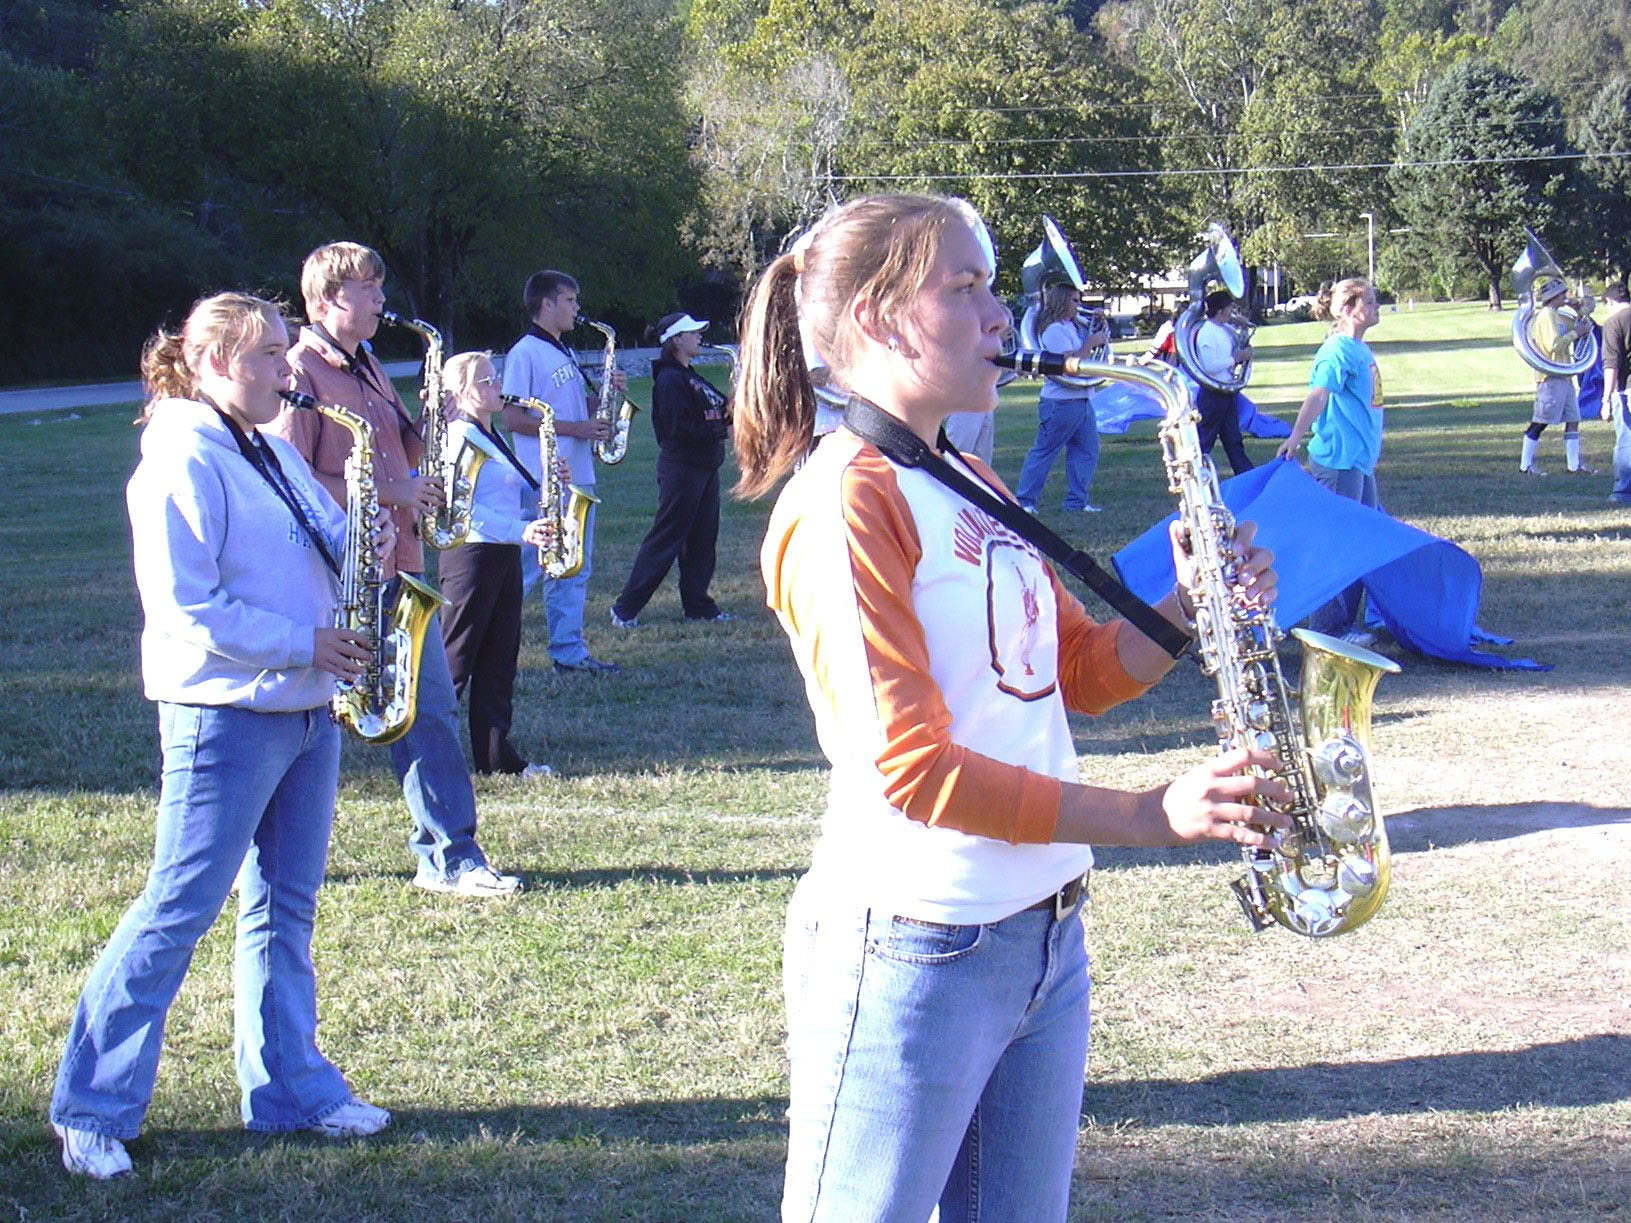 Anna Baker, foreground,Êplays the saxophone while participating in drills in preparation for the latest halftime show by members of the Clinton High School Marching Band. In back, from left: Rachel Stonecipher, Cory Glen, Melissa Gingery, Brian Long and Kelly Coffman. Twirling the flags at right is Jill Ferrie.  2003.